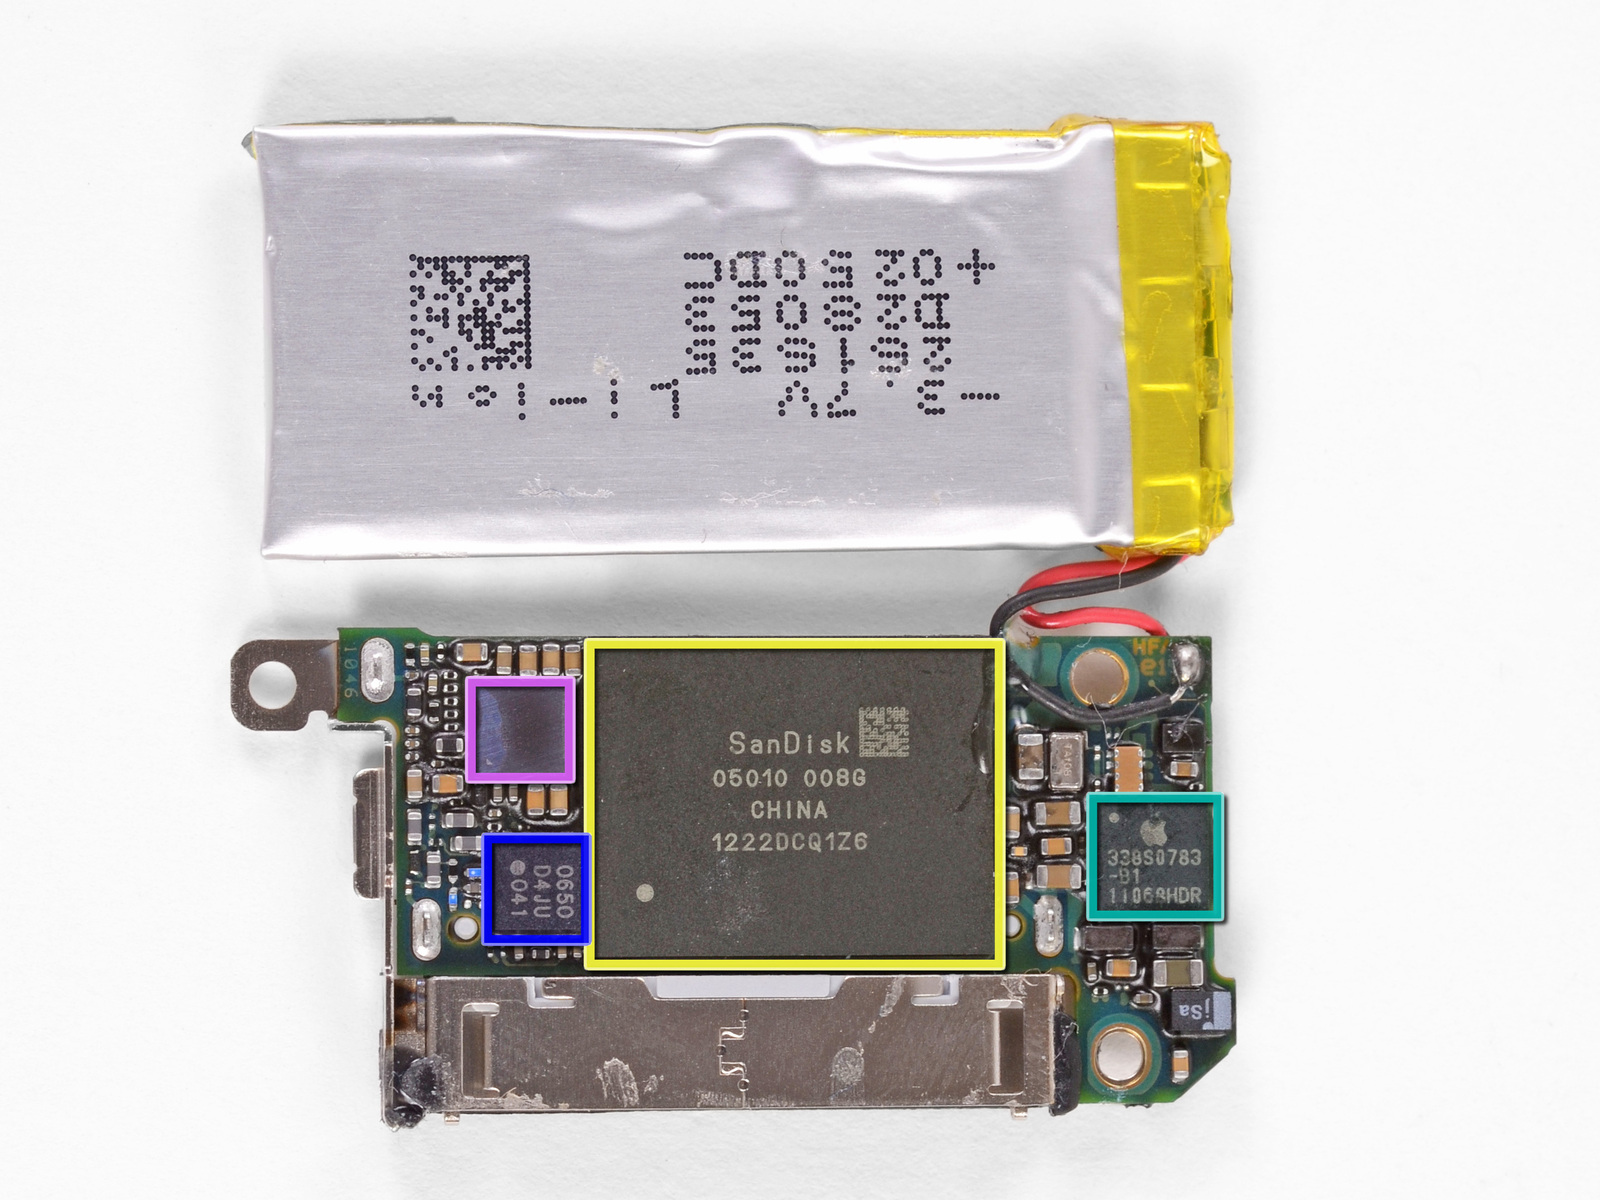 Chips e bateria do iPod nano 7G - iFixit